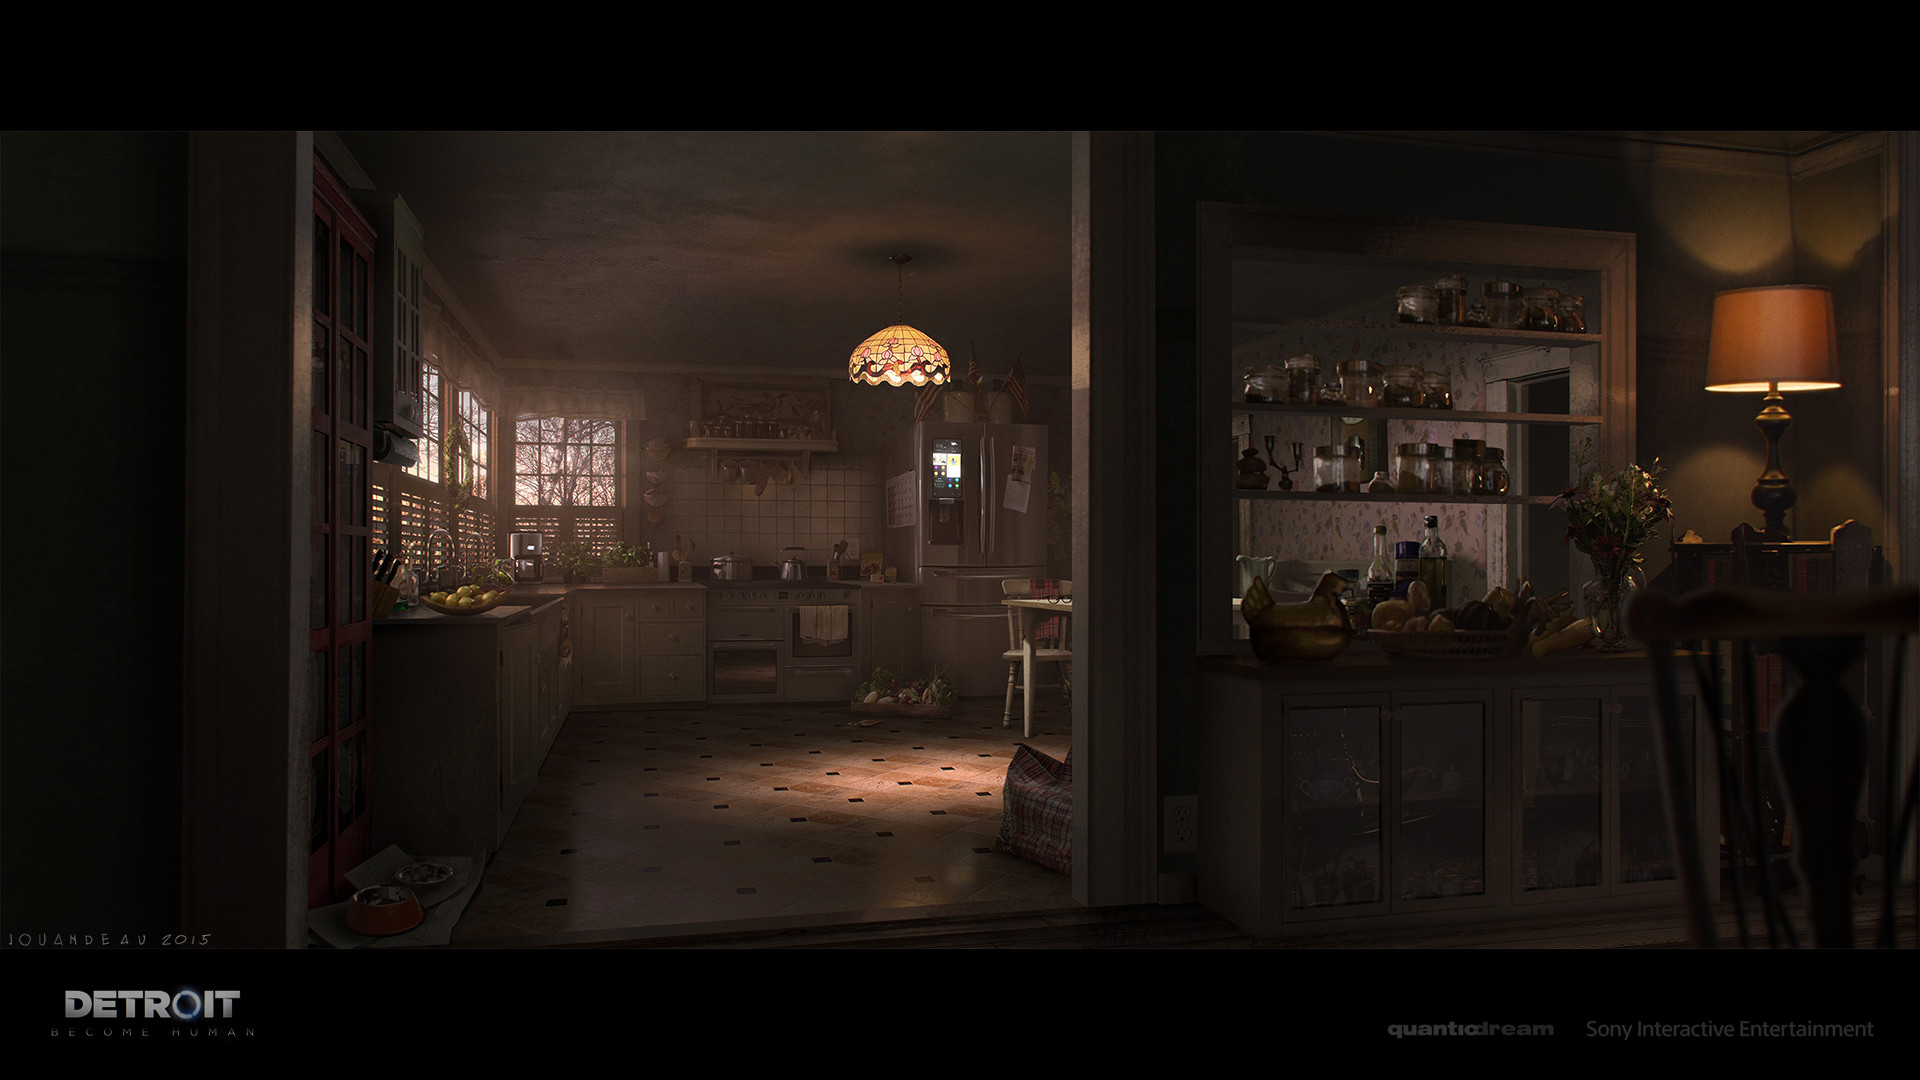 Romain jouandeau decor act ii s08k kara a place to hide kitchen v07